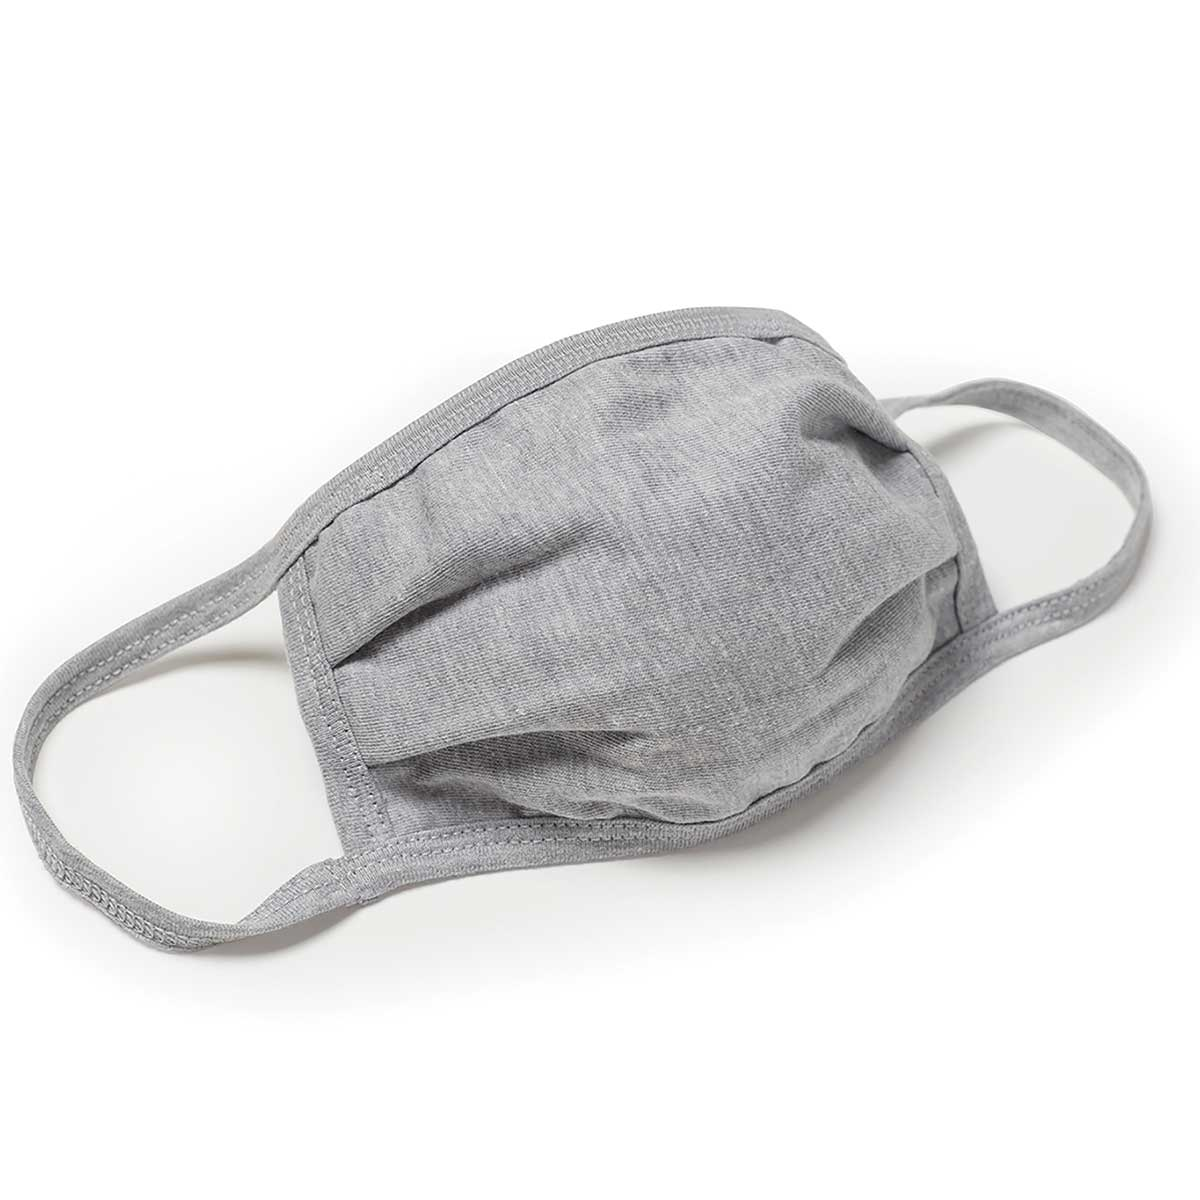 Hanes Frontline Masks, Gray Pk. of 5